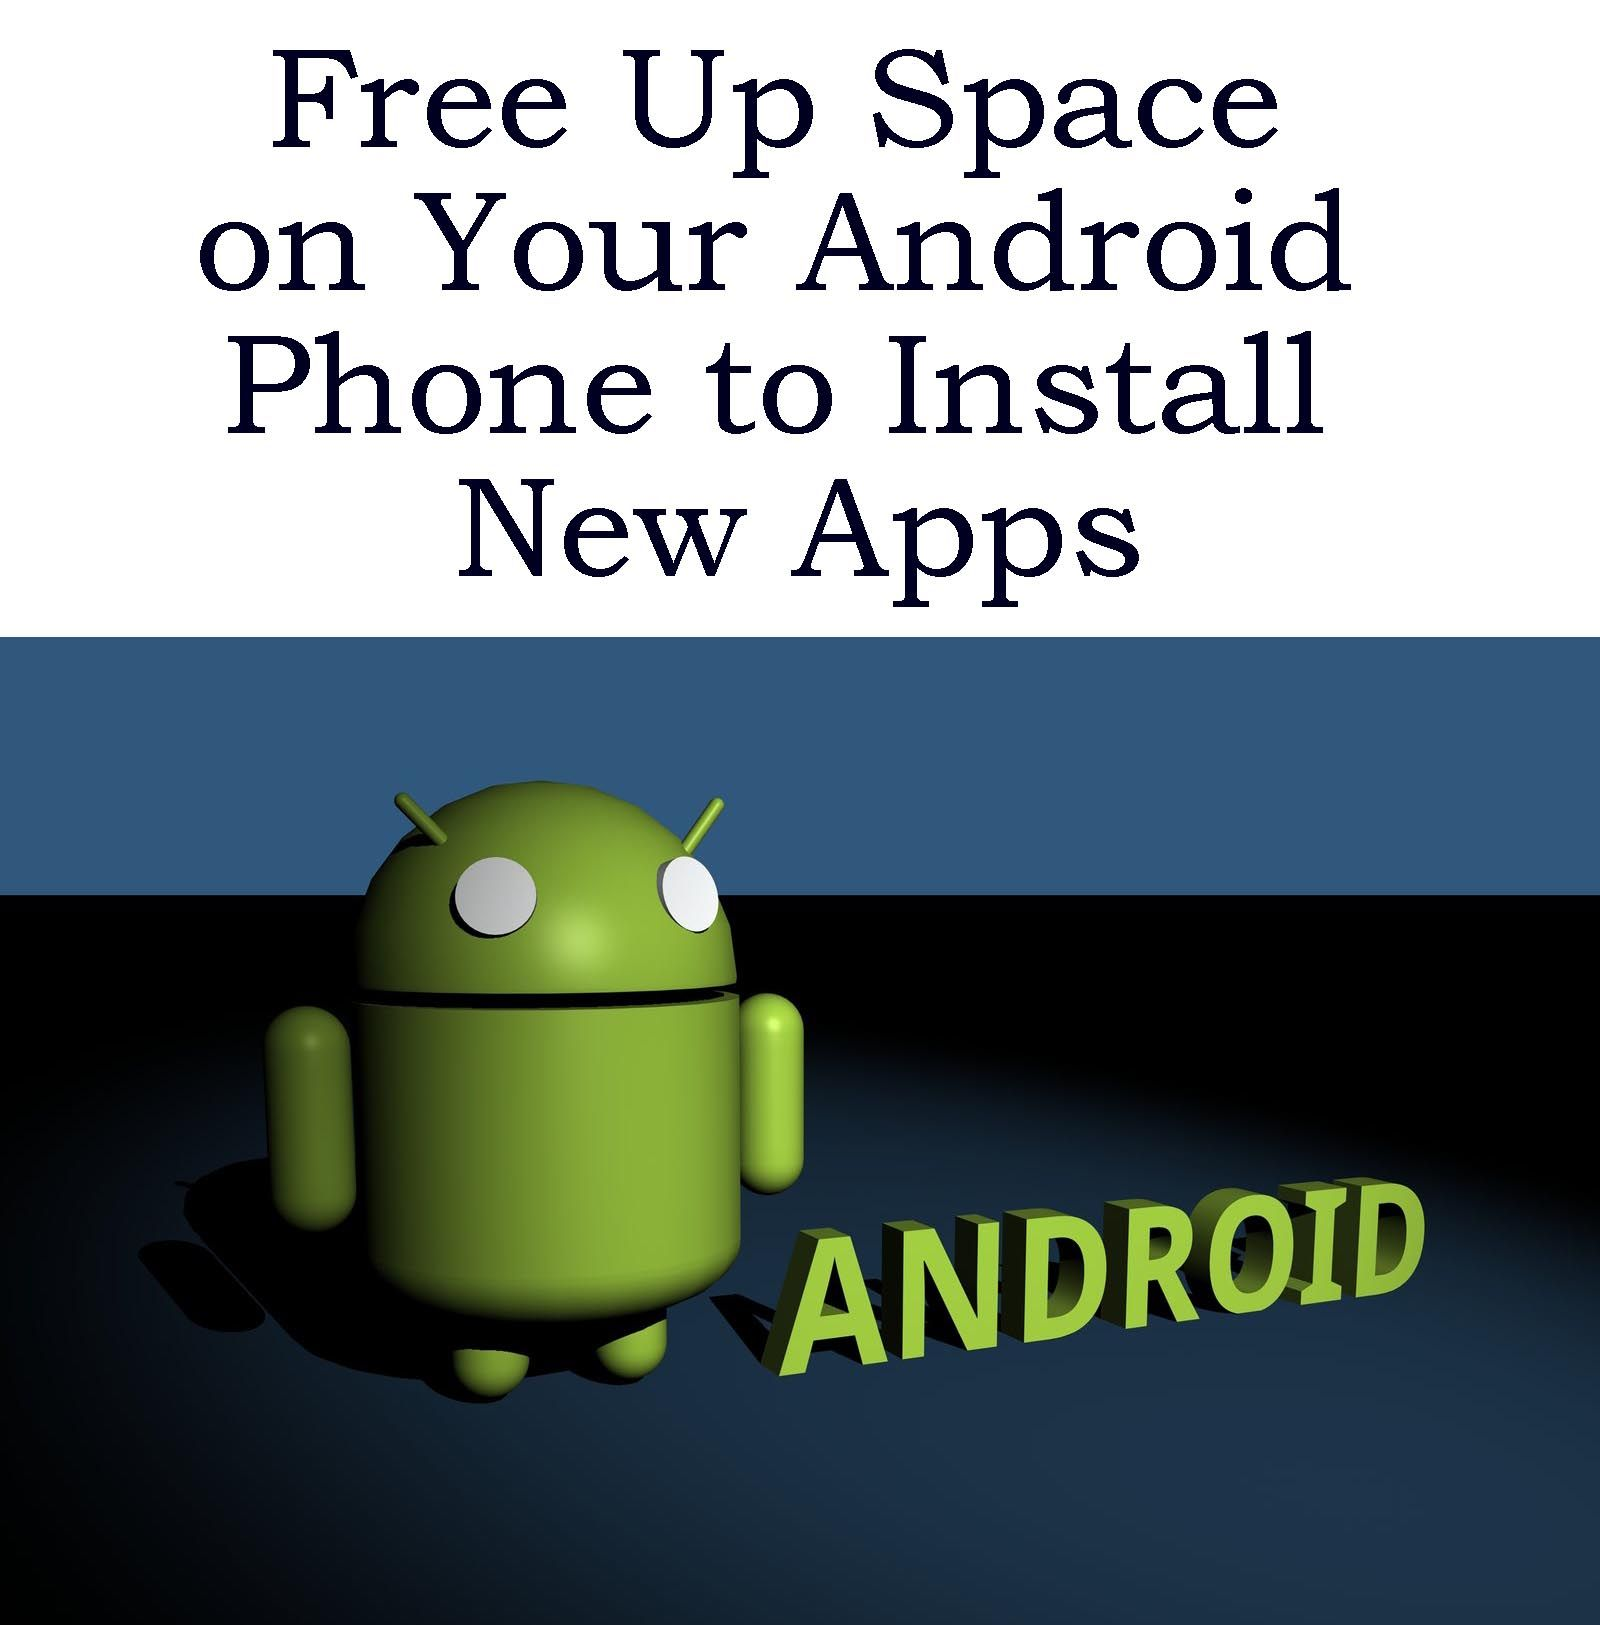 How to free up space on your Android Phone so that you can